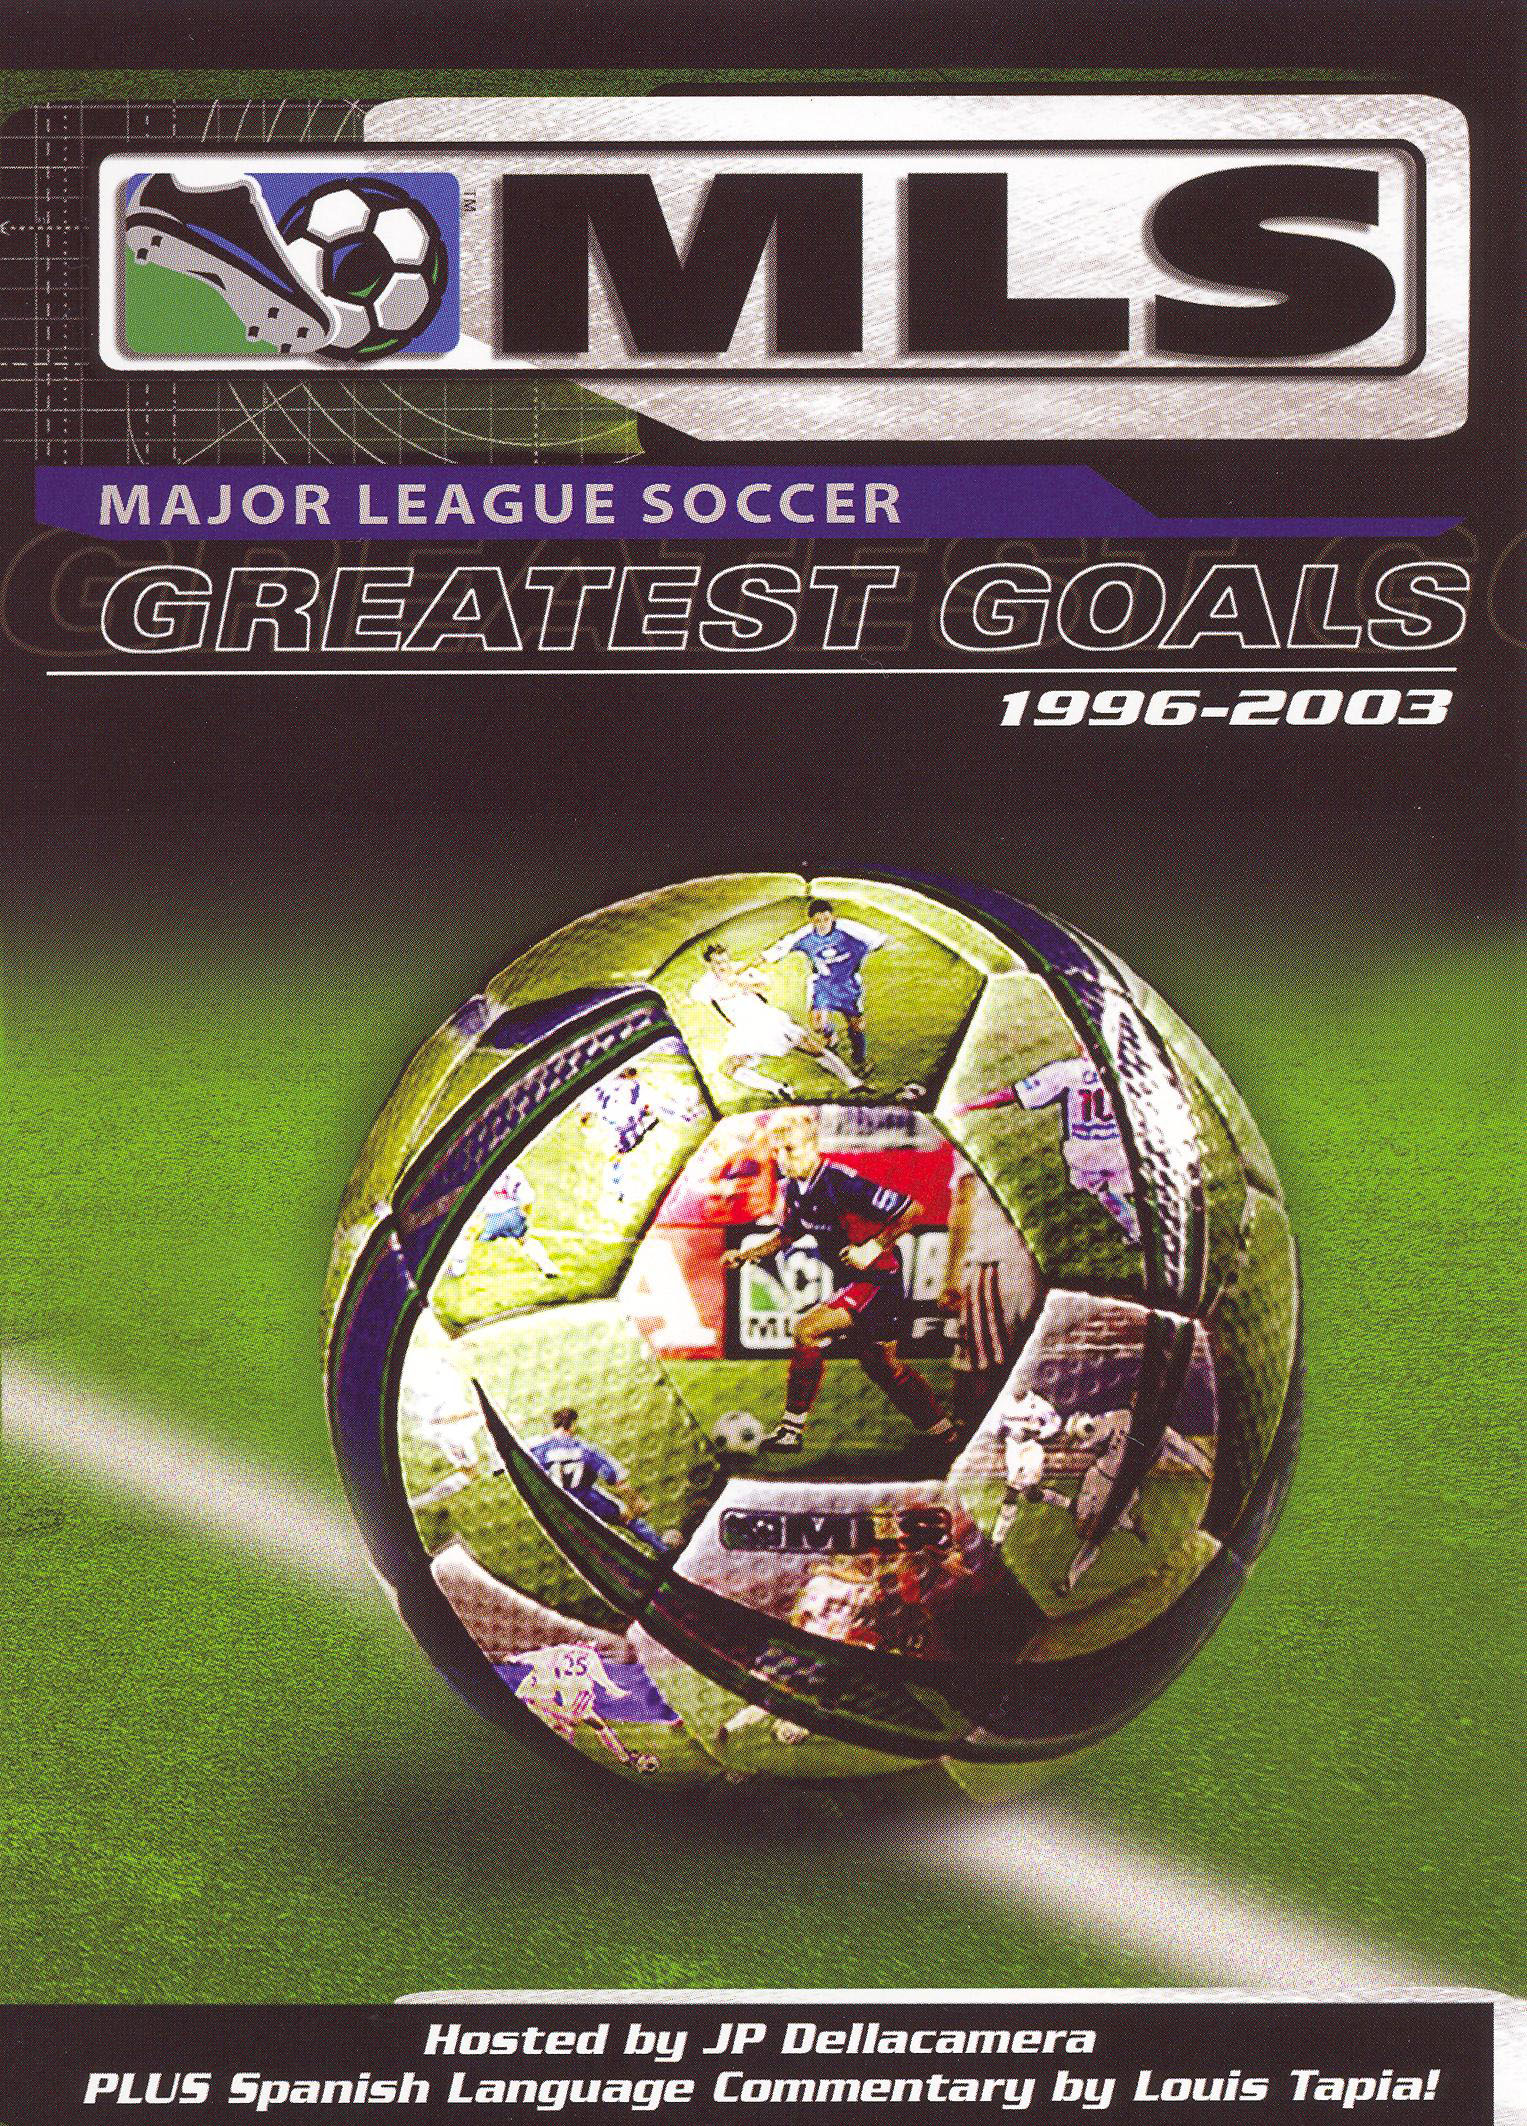 MLS: Greatest Goals - 1996-2003